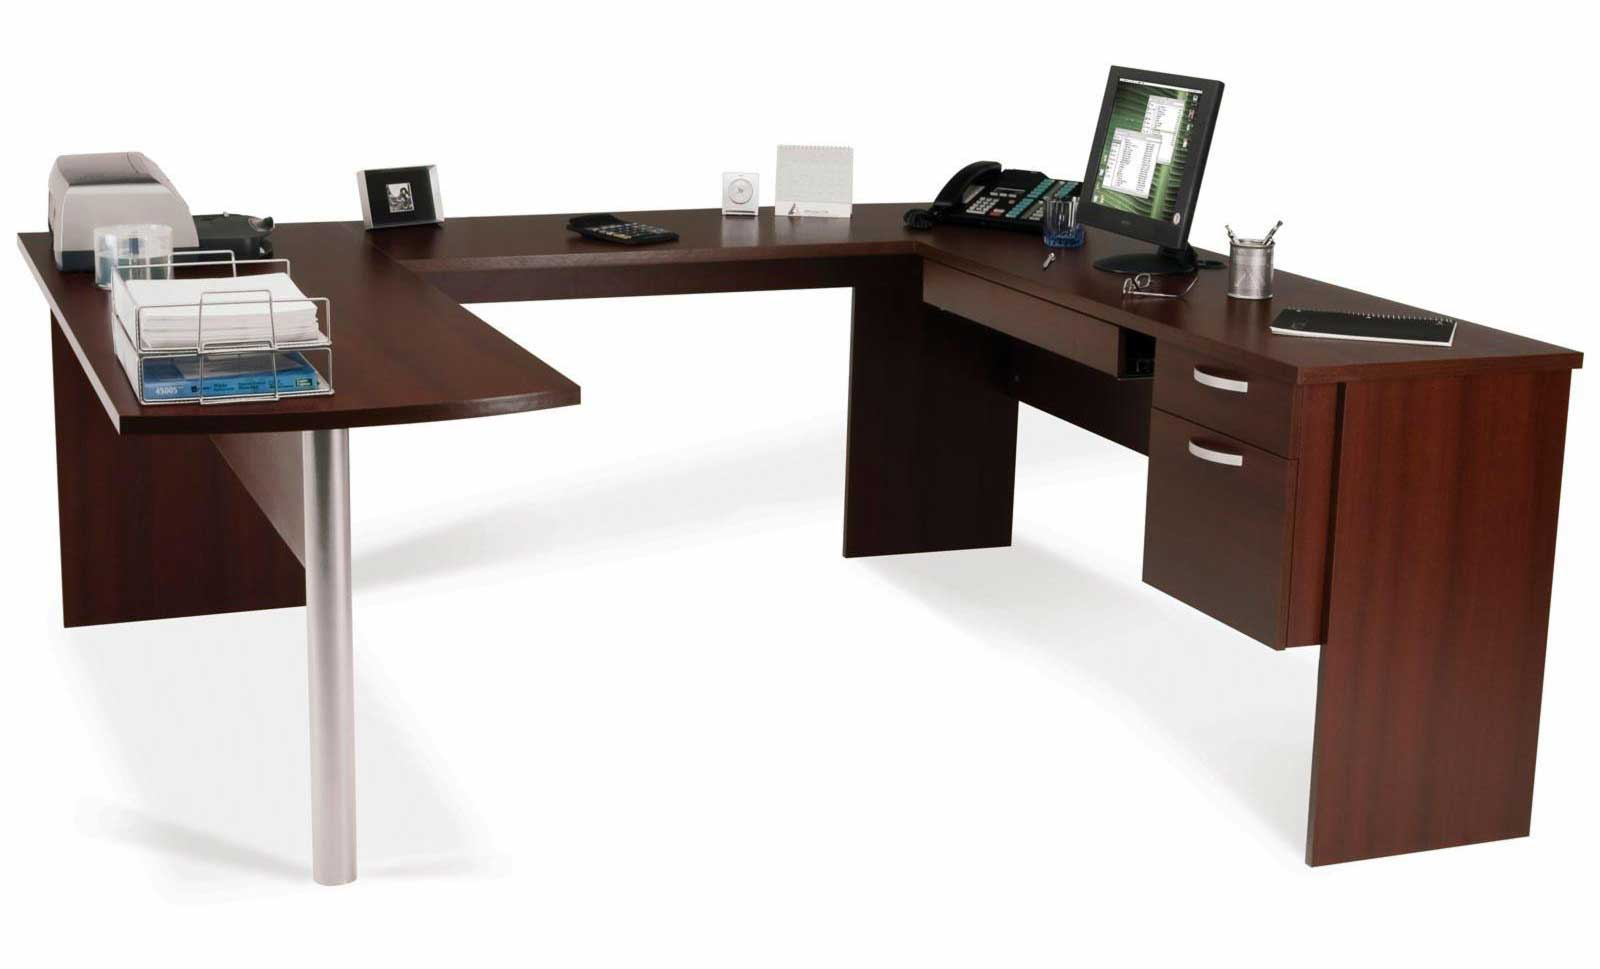 Corner desks office furniture - Corner office desk ...